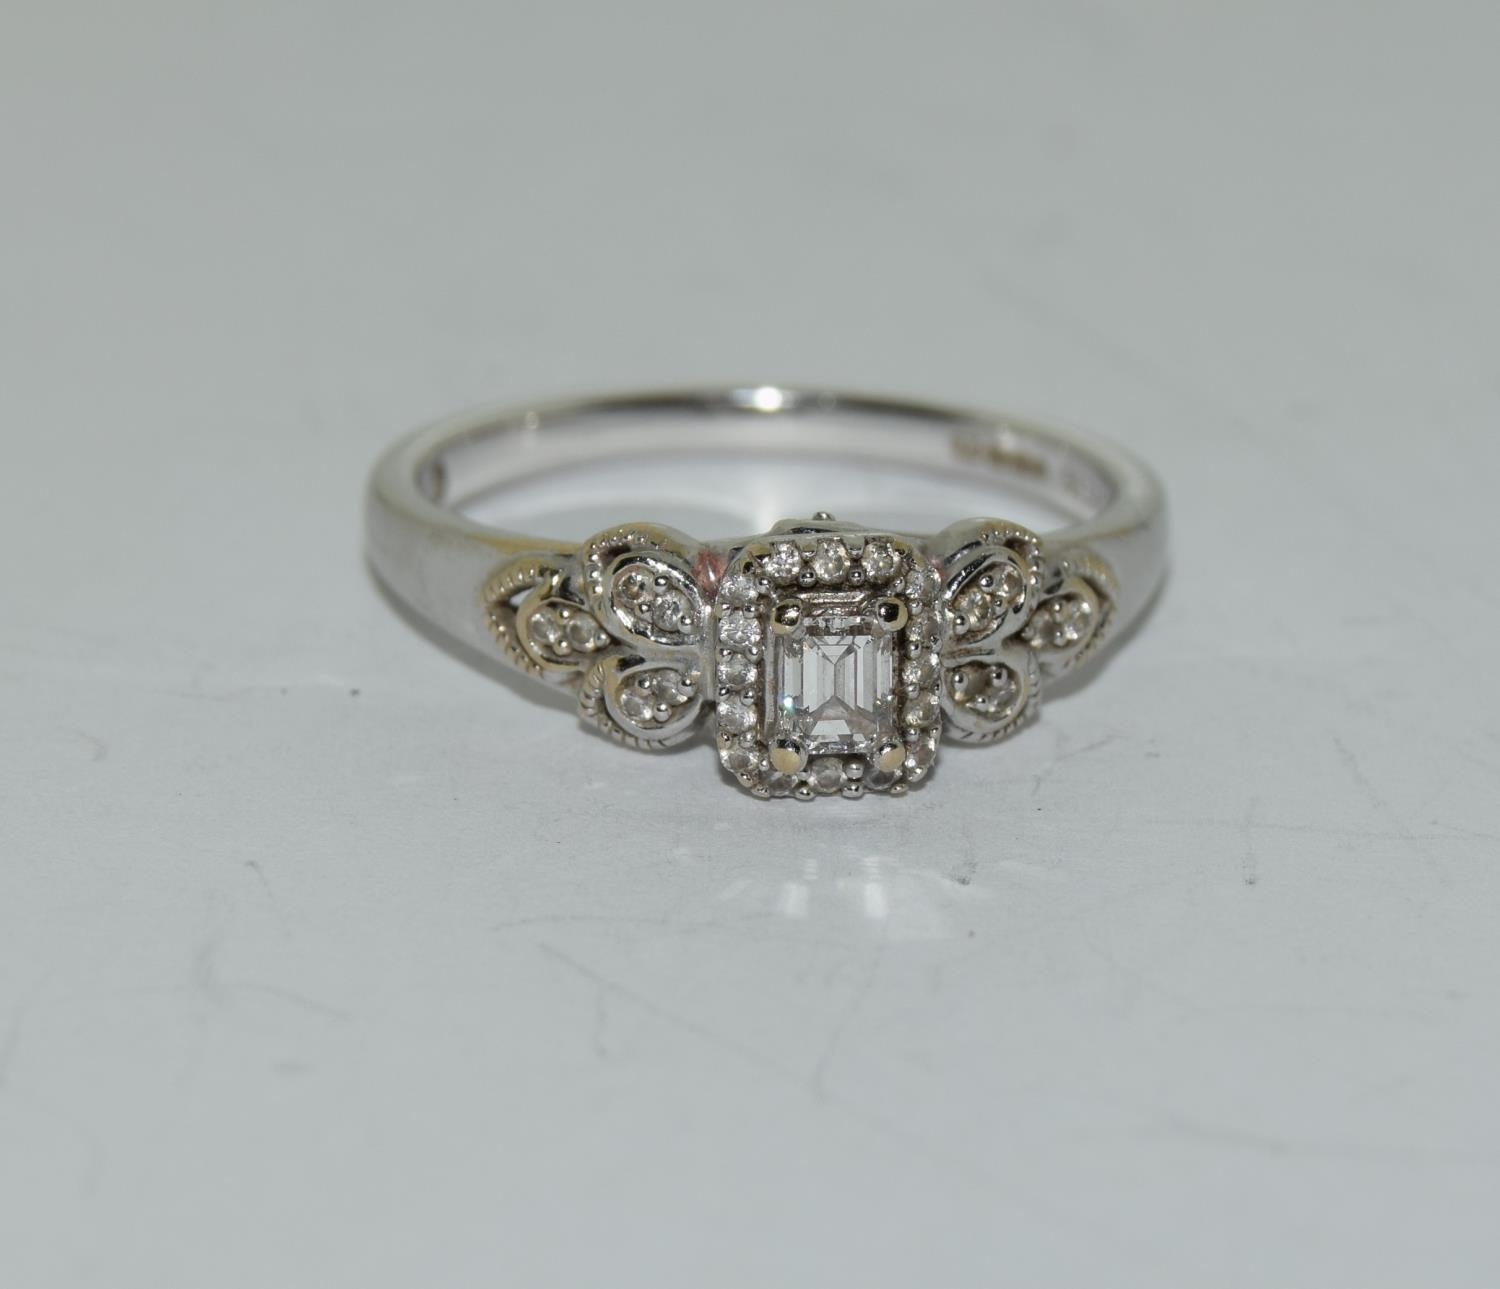 18ct white gold ladies diamond ring with certificat and original boxes from Emmy of London size O - Image 2 of 5